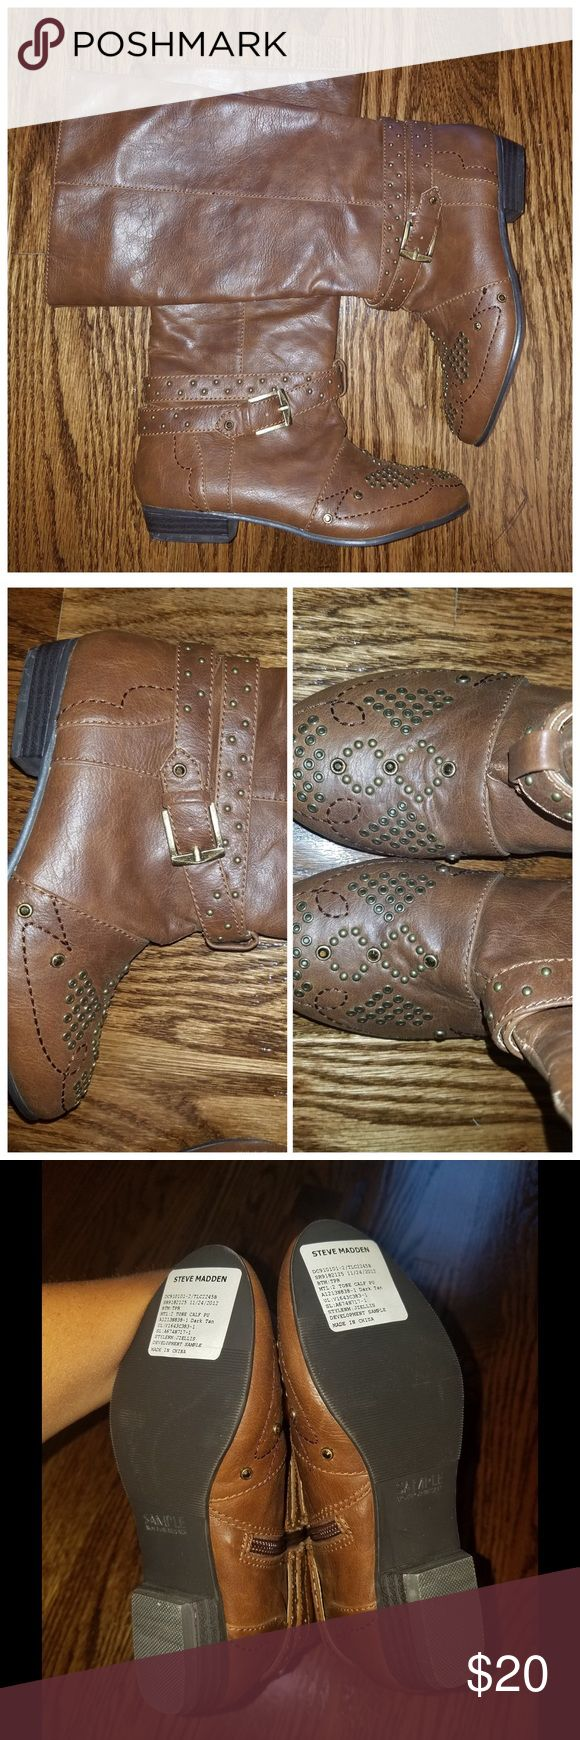 studded brown tall boots So cute. Never worn, but there is  a small tear in stuck on one boot, shown in pic. Other than that, perfect condition. These are STEVE MADDEN, from a sample shoe sale. No size marked, but they are a size 13. Very cute. Steve Madden Shoes Boots